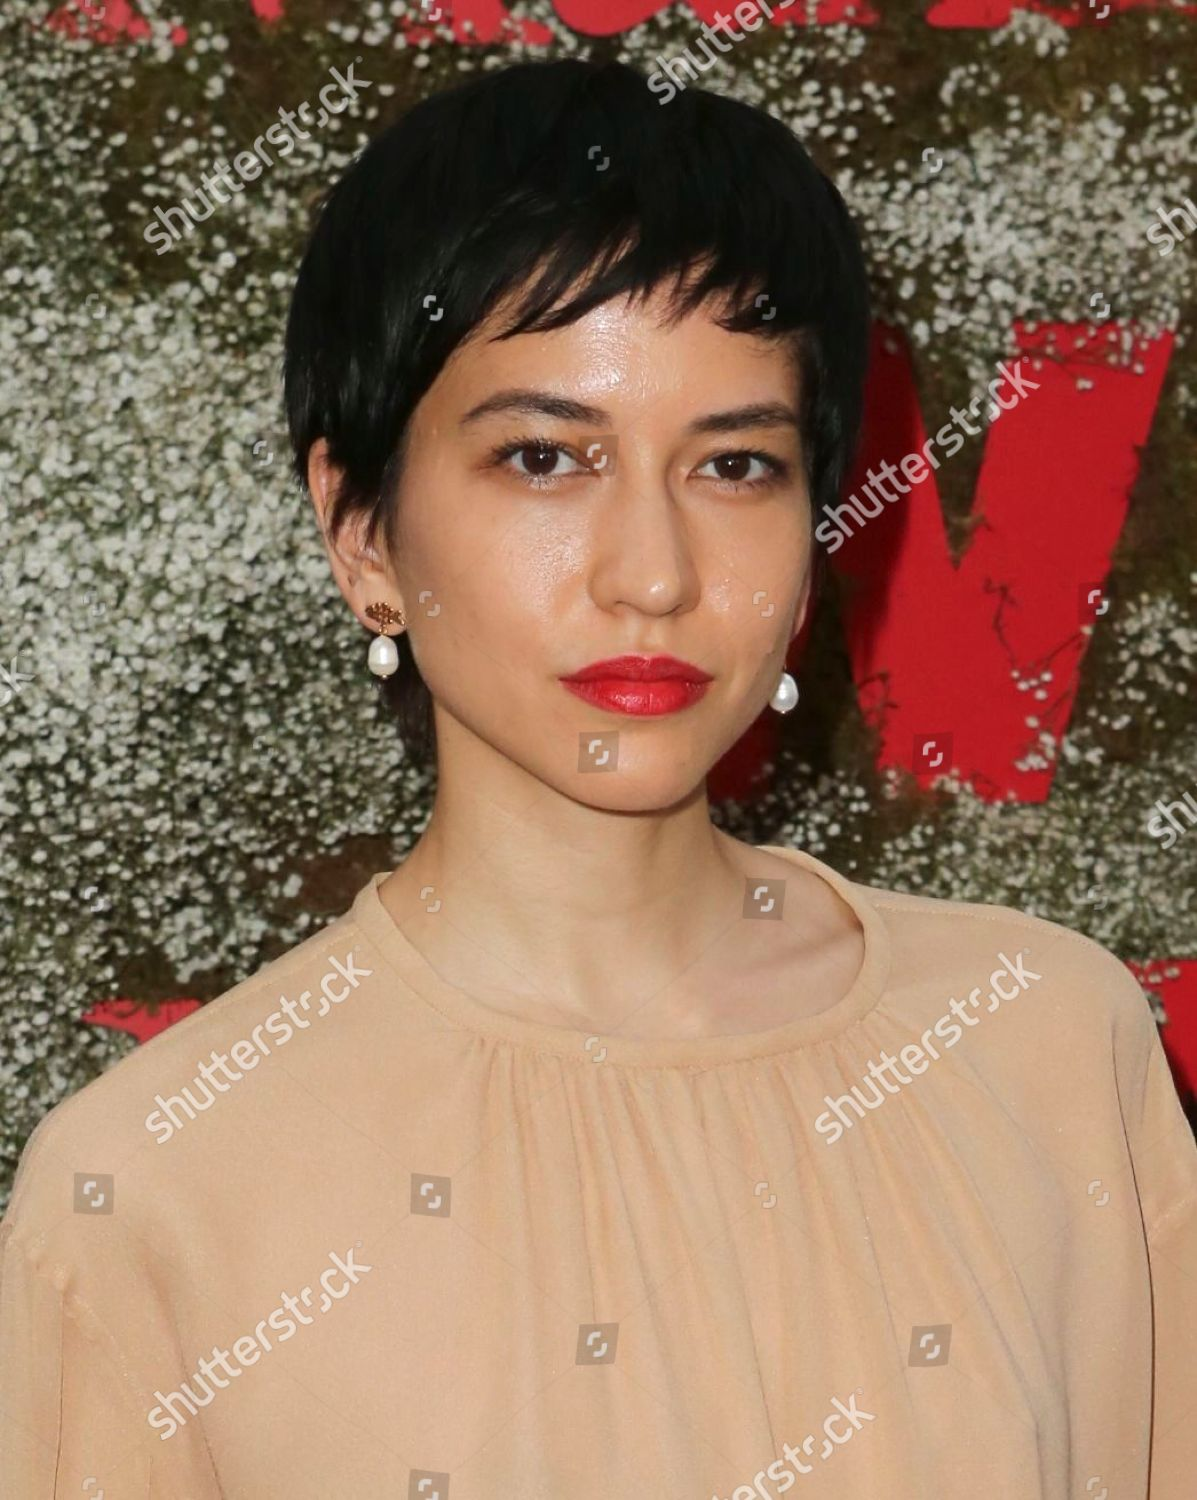 Sonoya mizuno dating advice